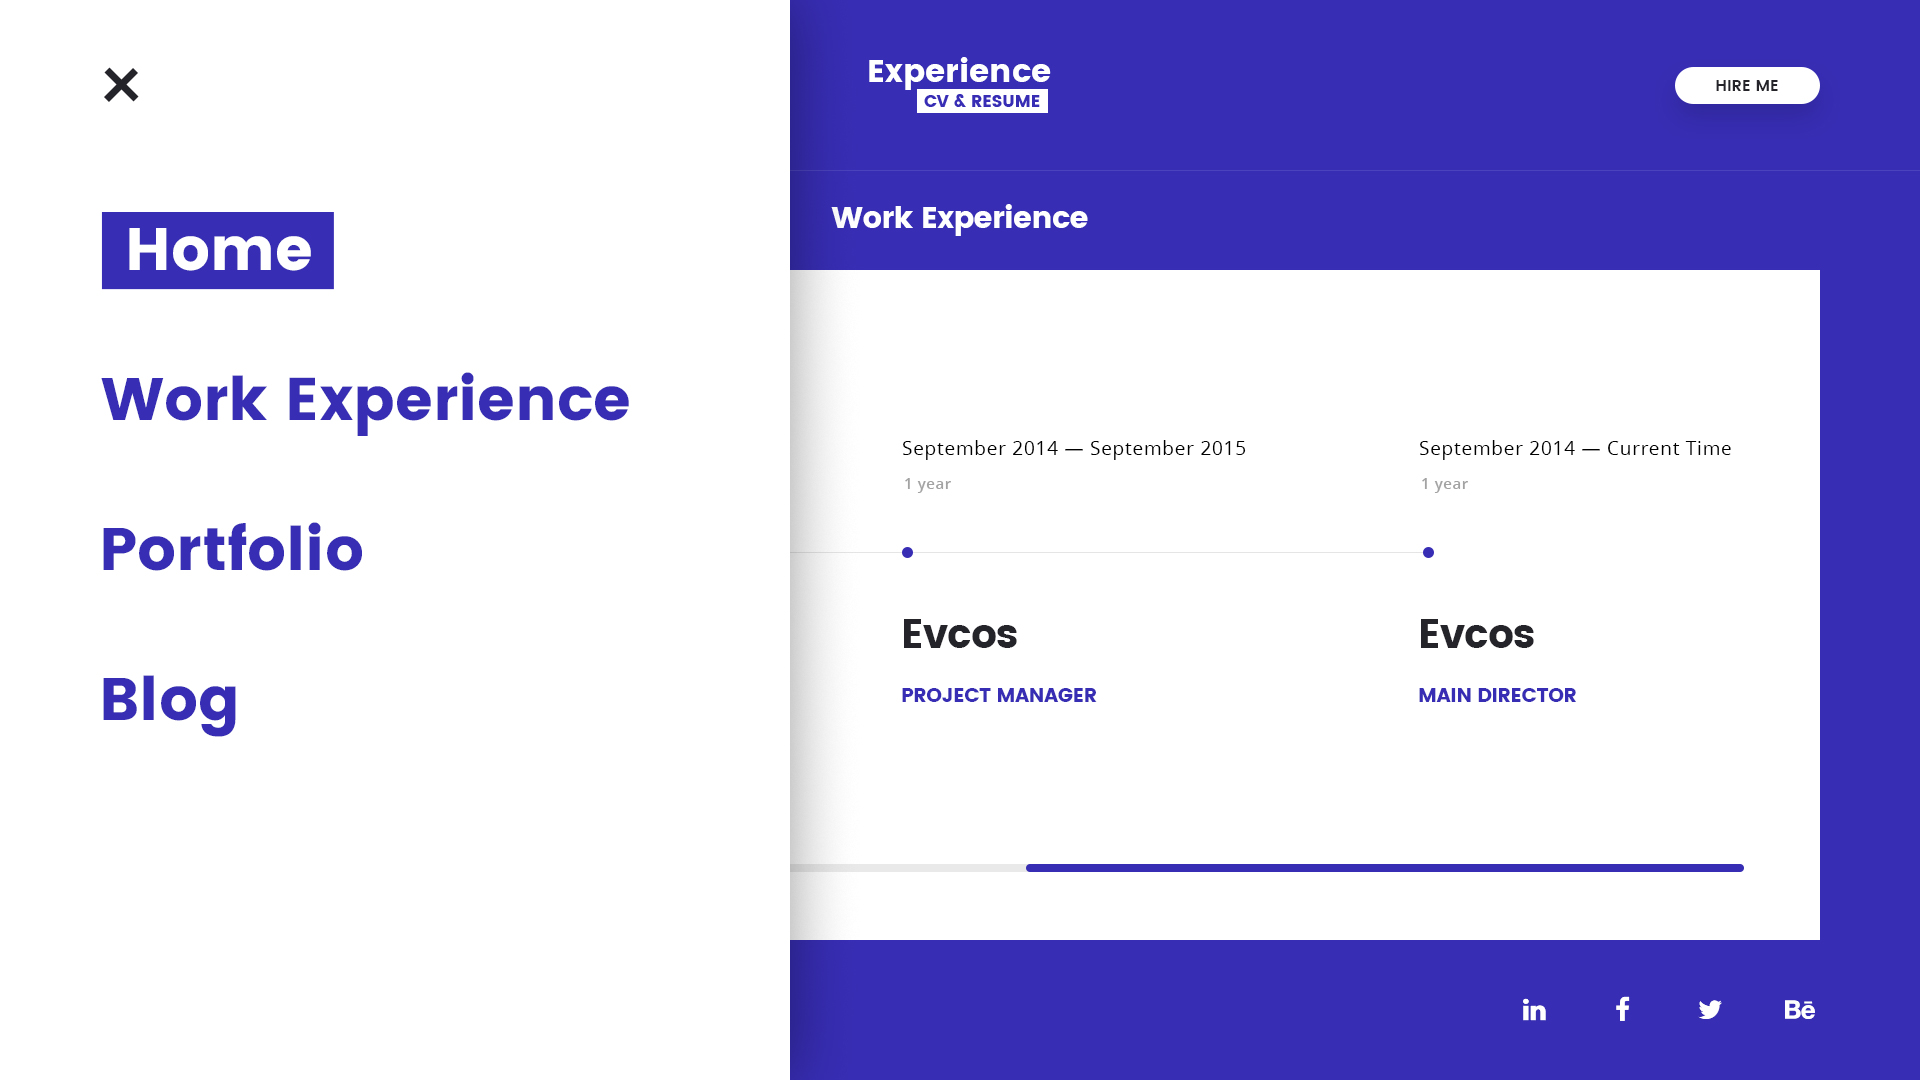 Experience CV Resume PSD Template by Stockware